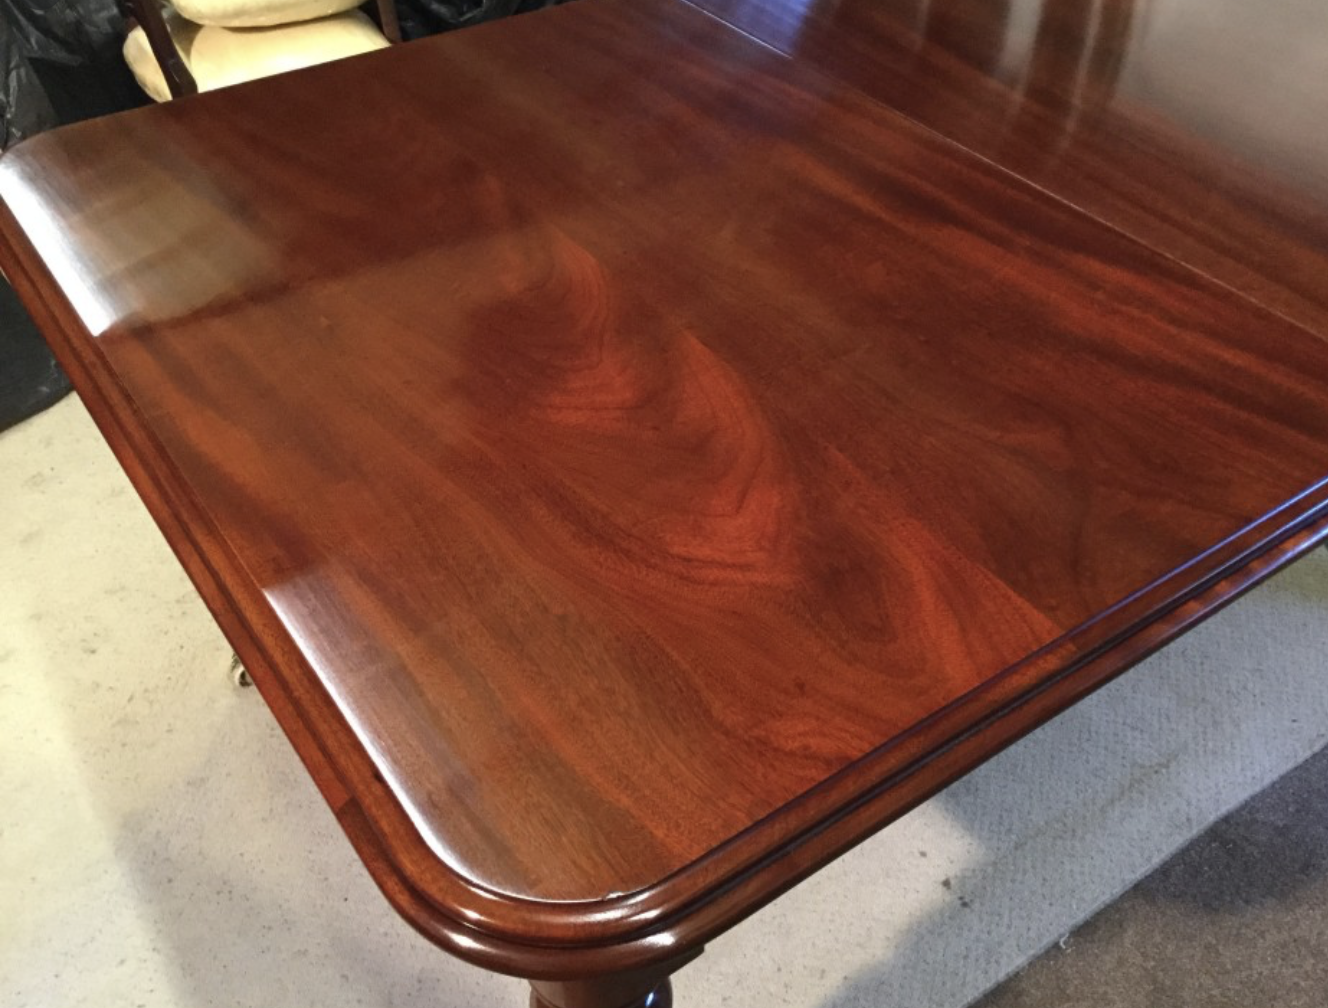 French polish achieves a deep shine